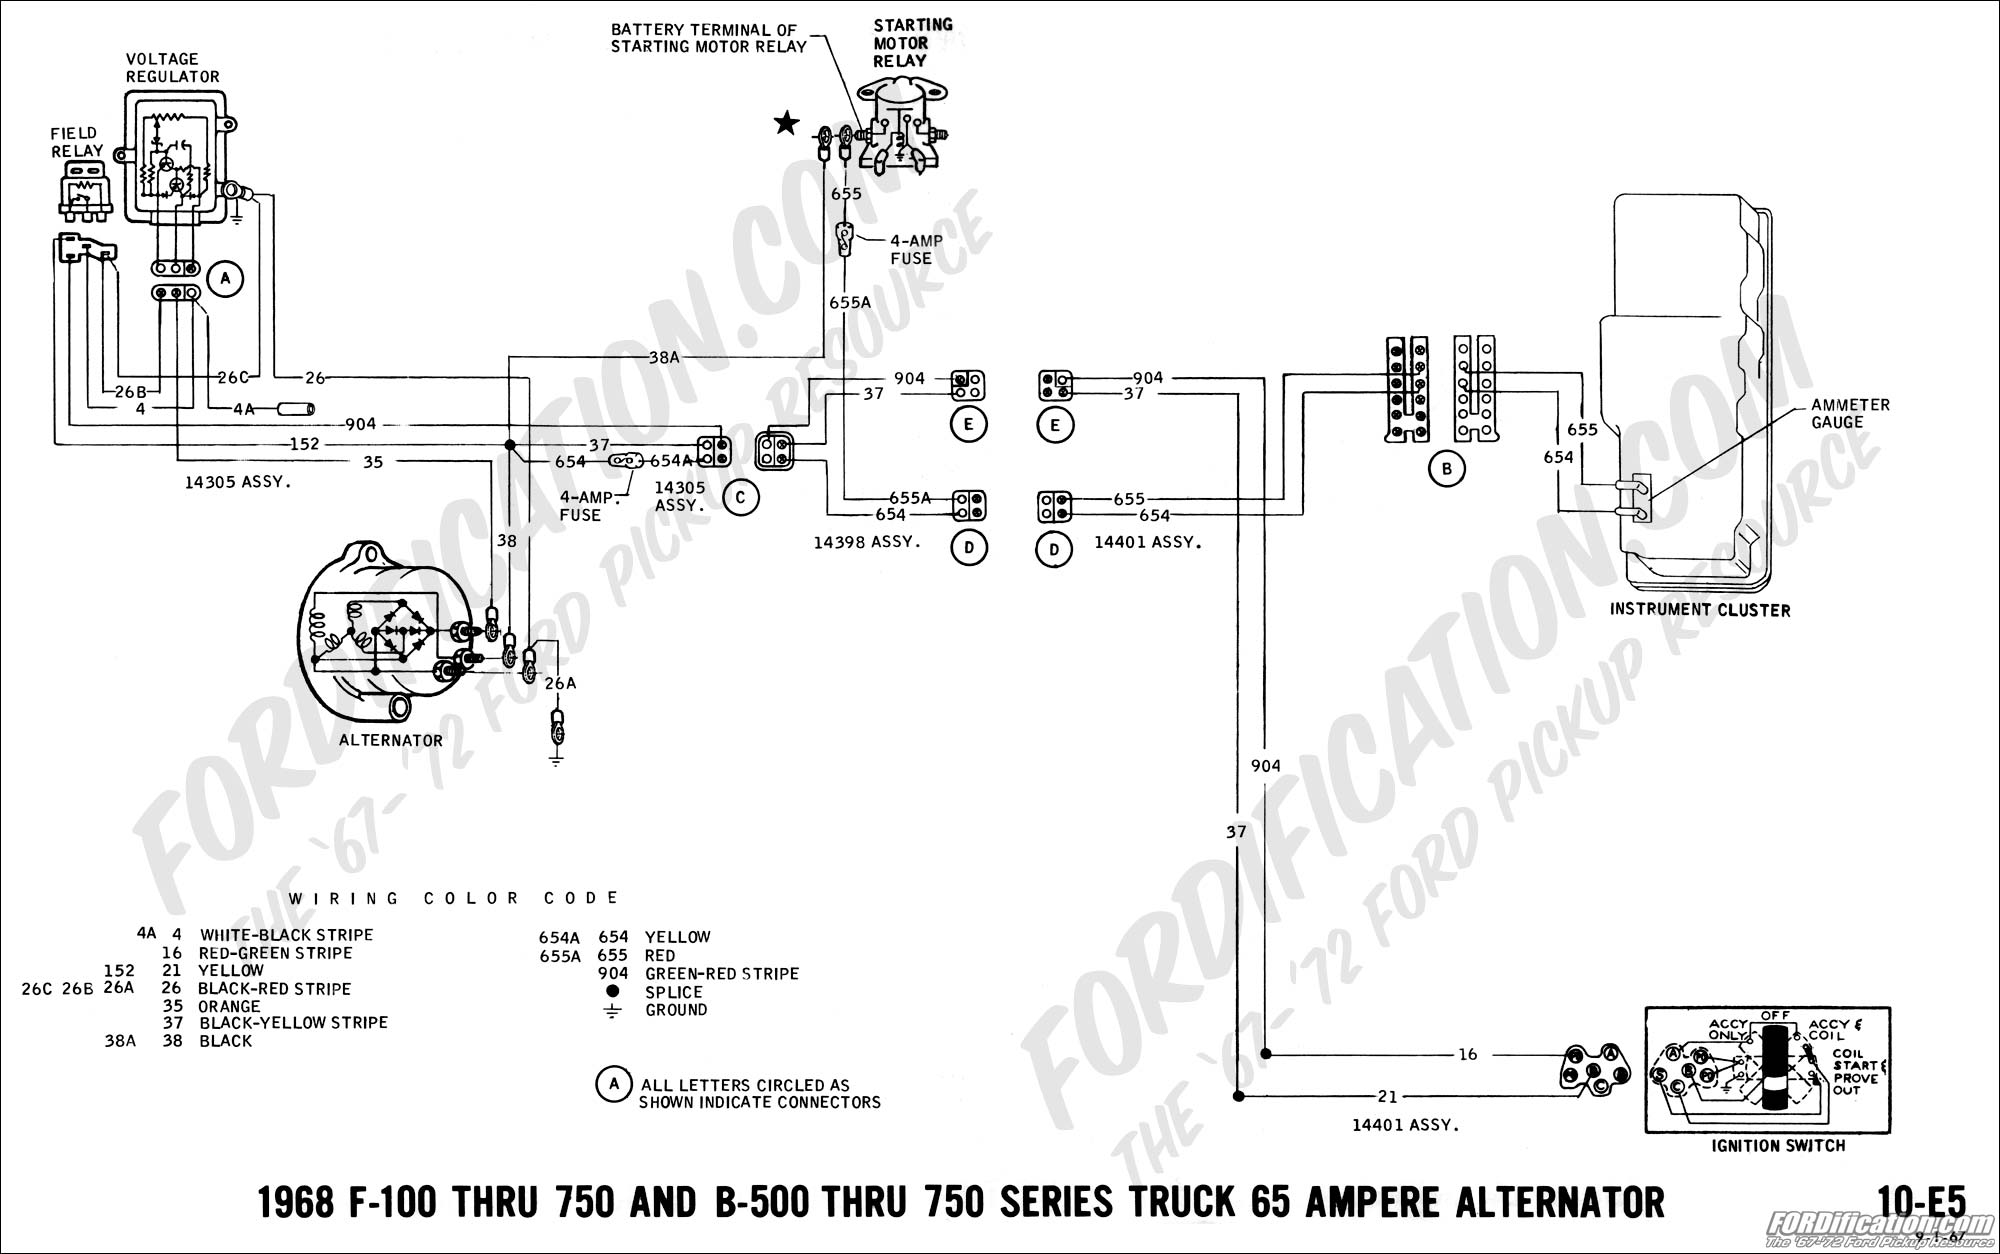 68 07 1968 ford f100 wiring diagram 1965 ford f100 alternator wiring 1965 ford mustang wiring diagrams at mr168.co